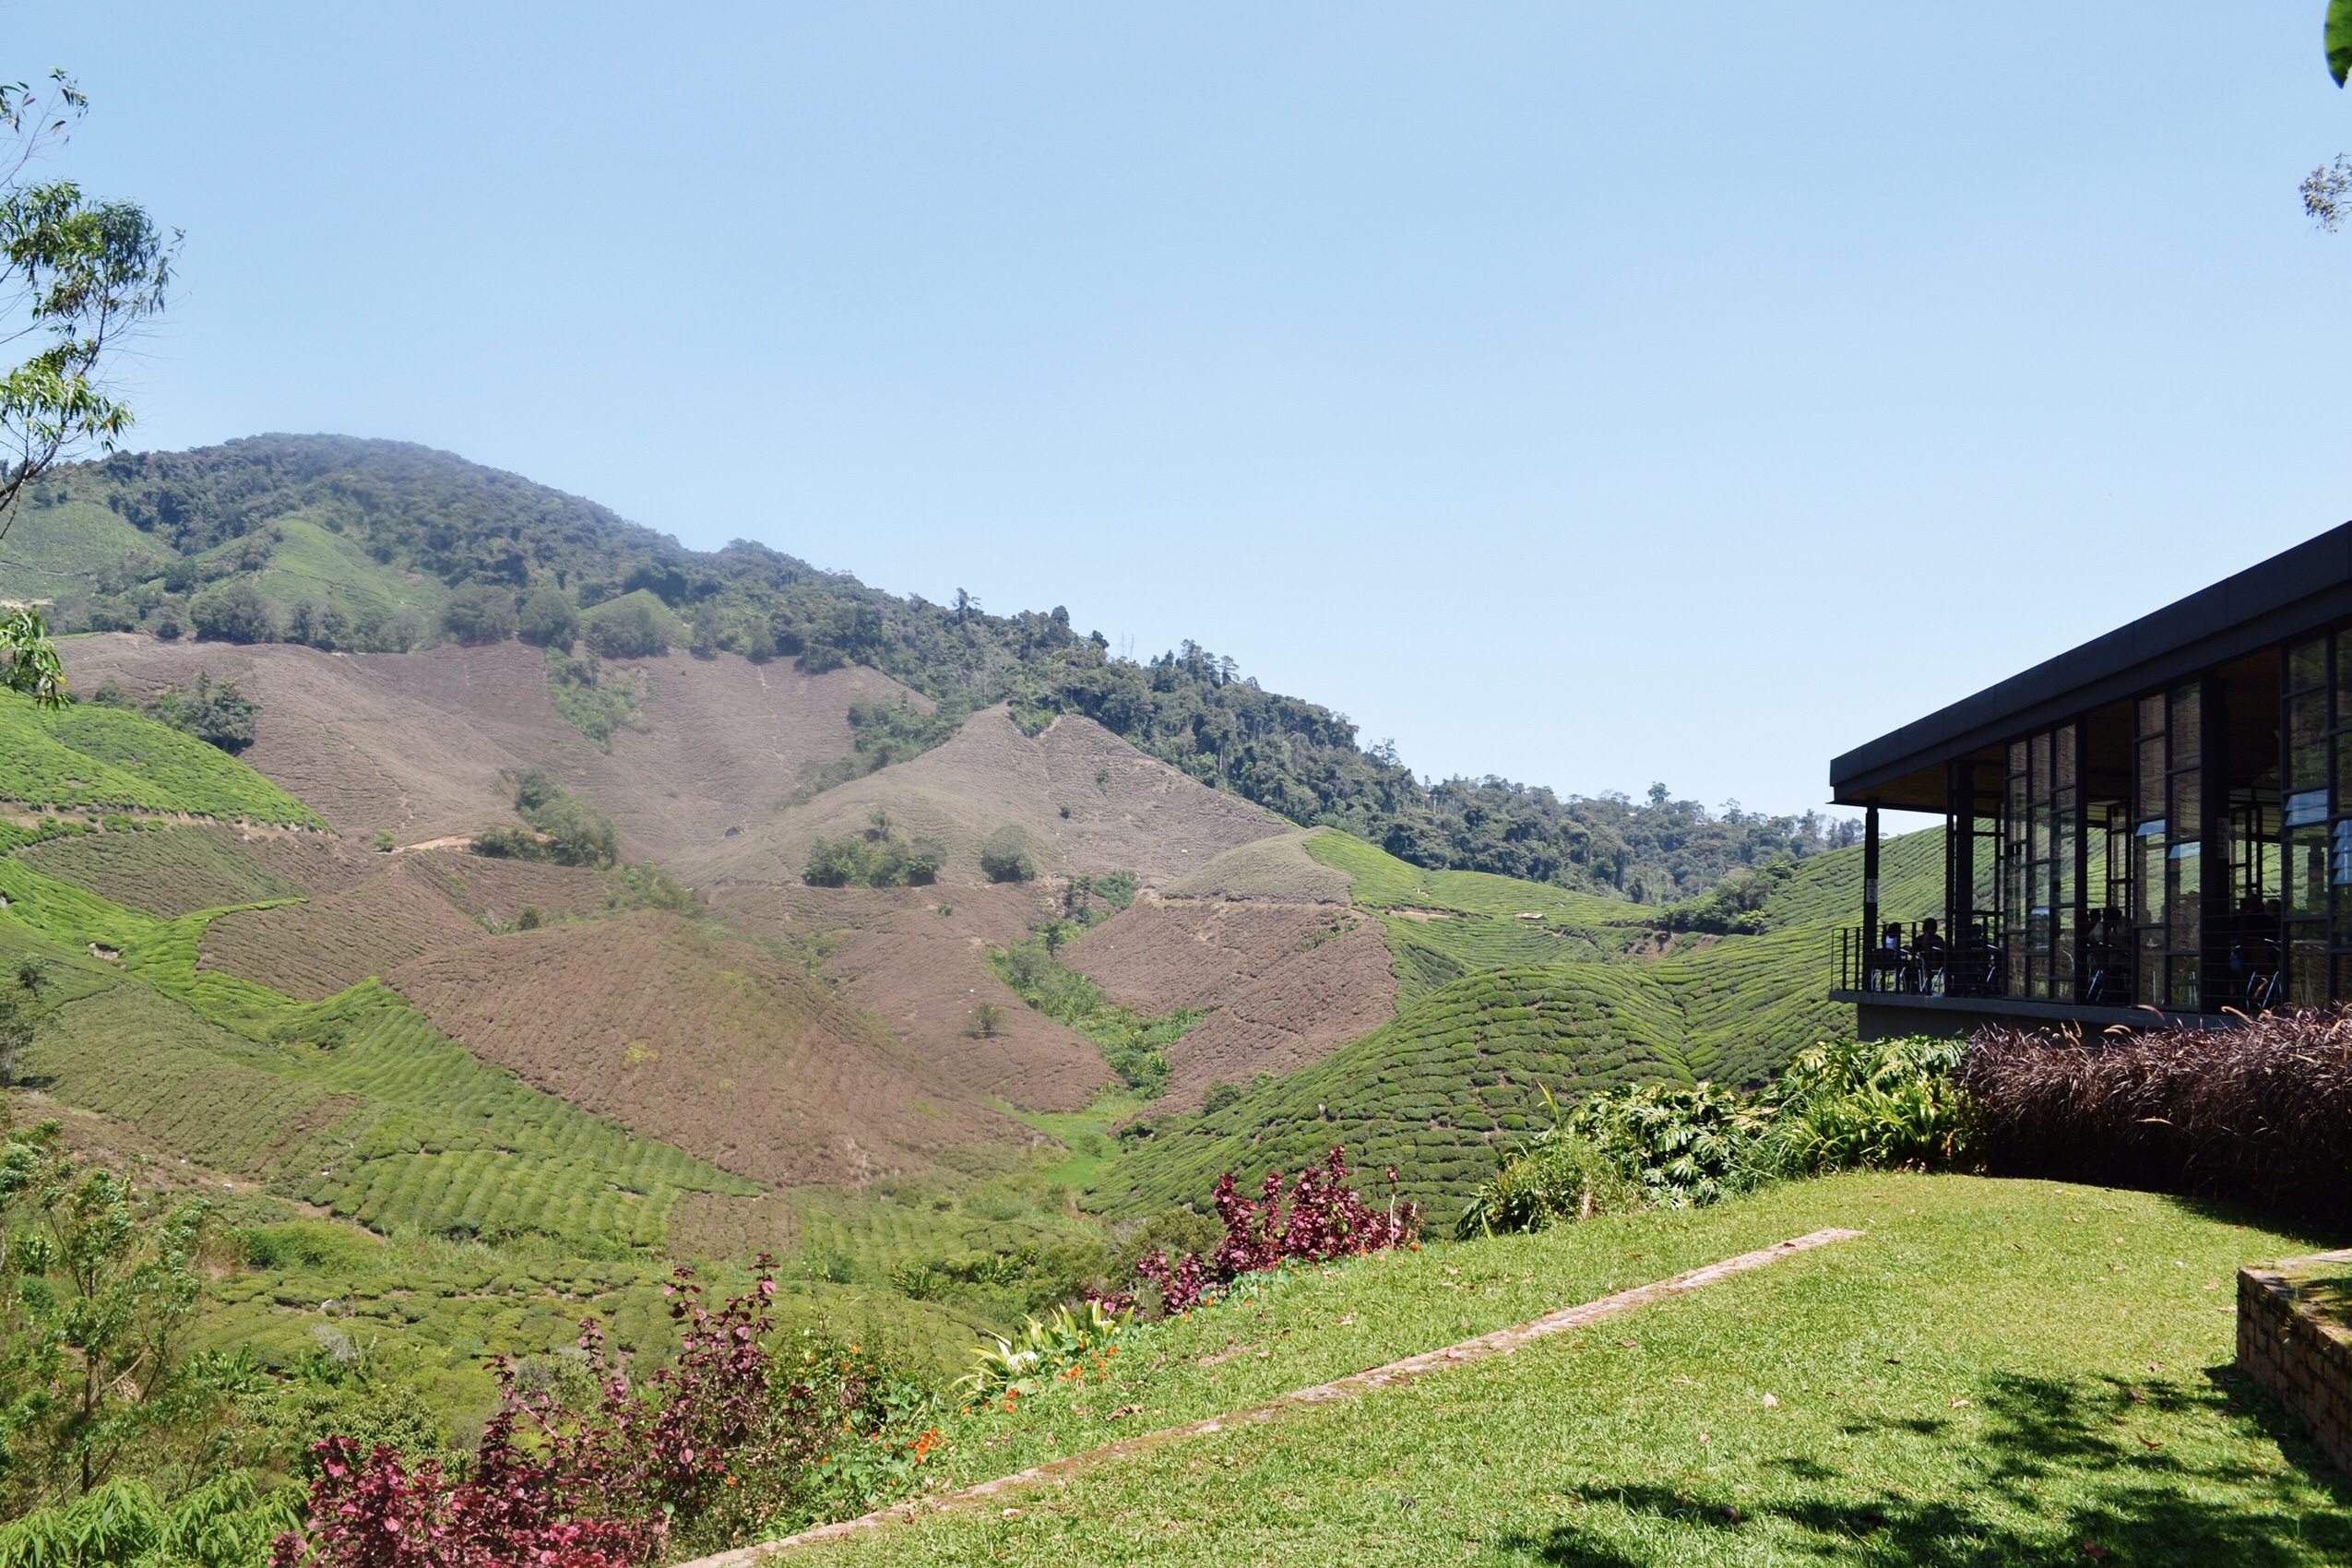 Image of Boh Tea plantation in Malaysia